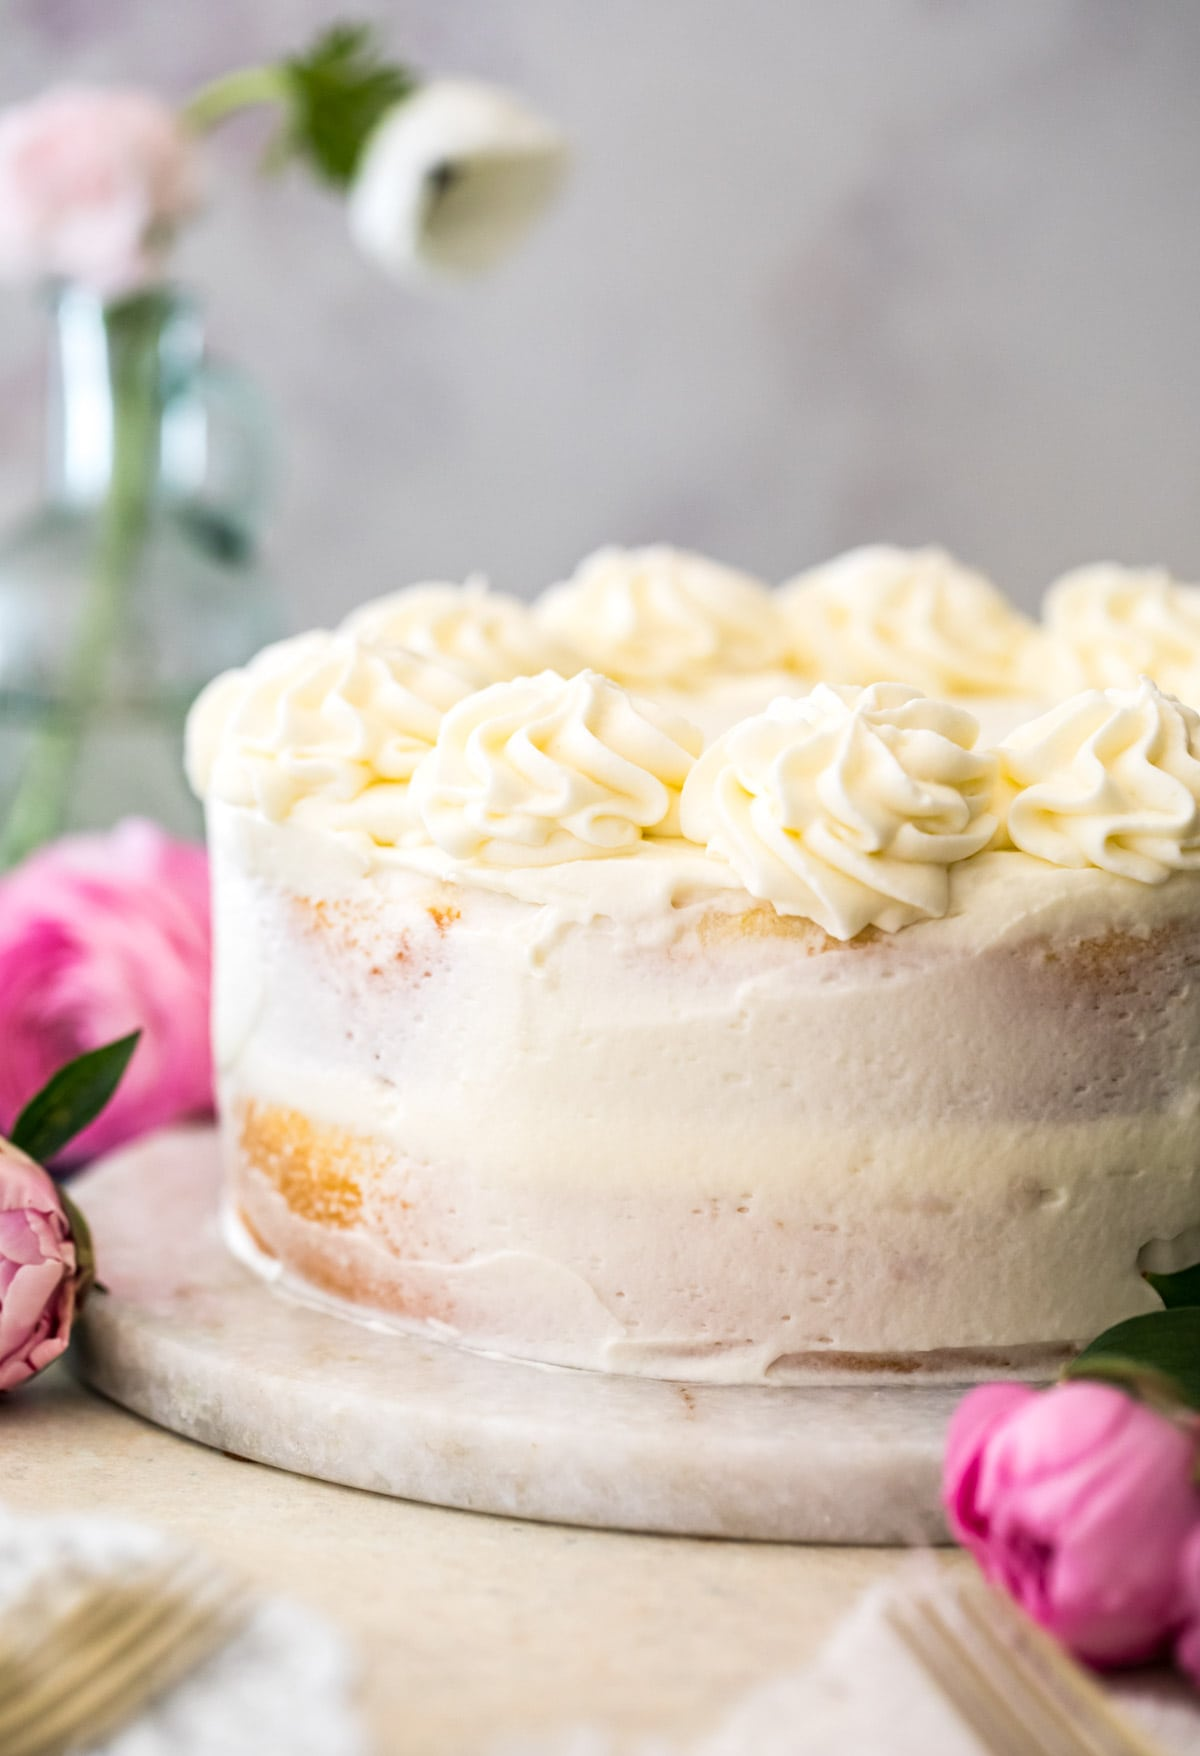 white frosted cake surrounded by pink flowers